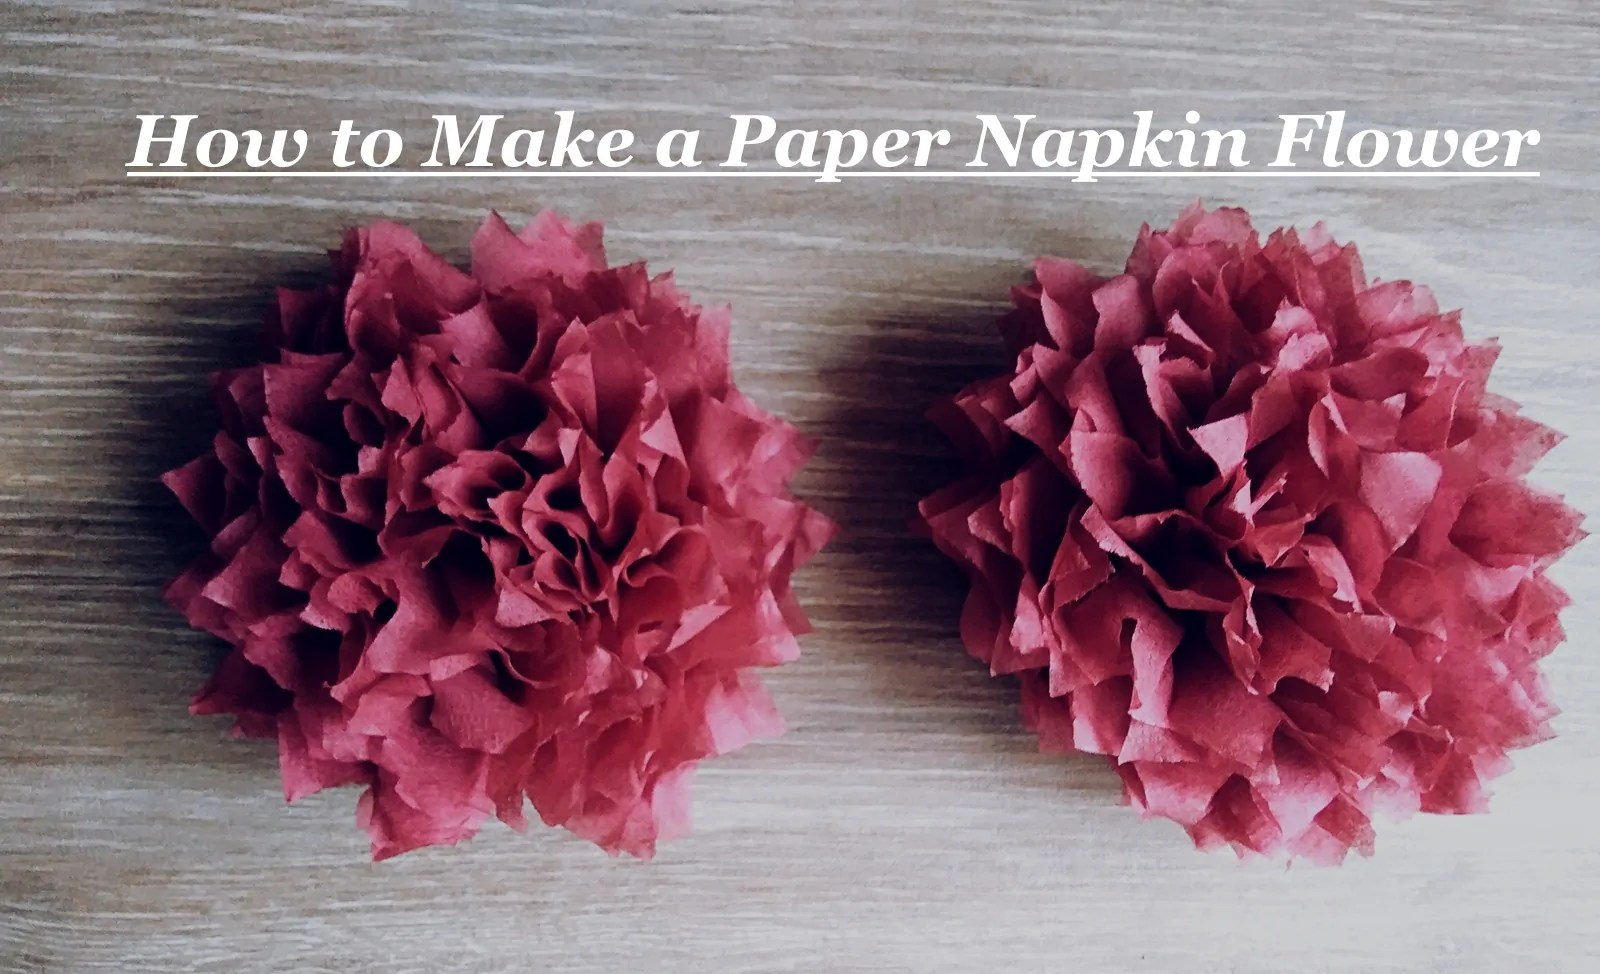 How to Make a Paper Napkin Flower